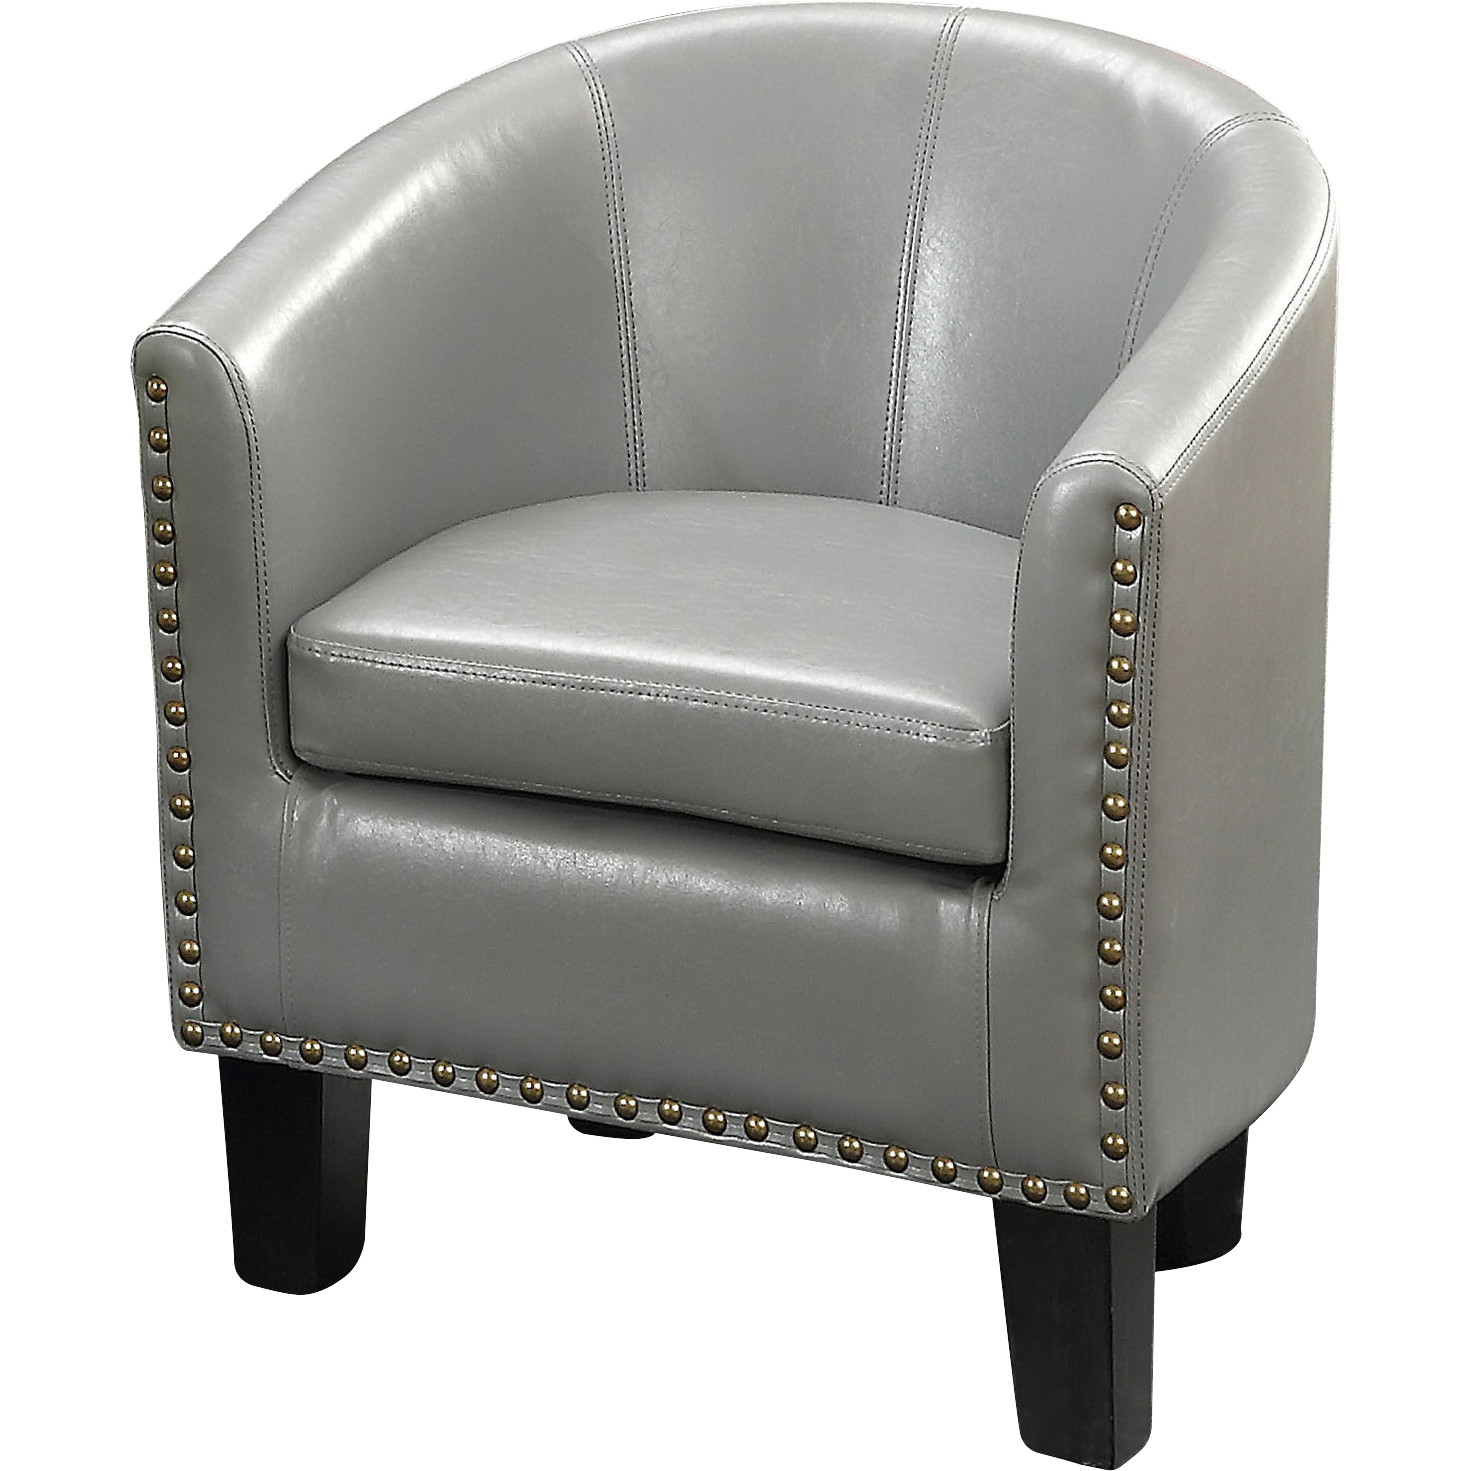 Alton Furniture Gemma Arm Club Chair, PU Leather Barrel Modern Chair, Multiple Colors by Fully Wind Co, Ltd.